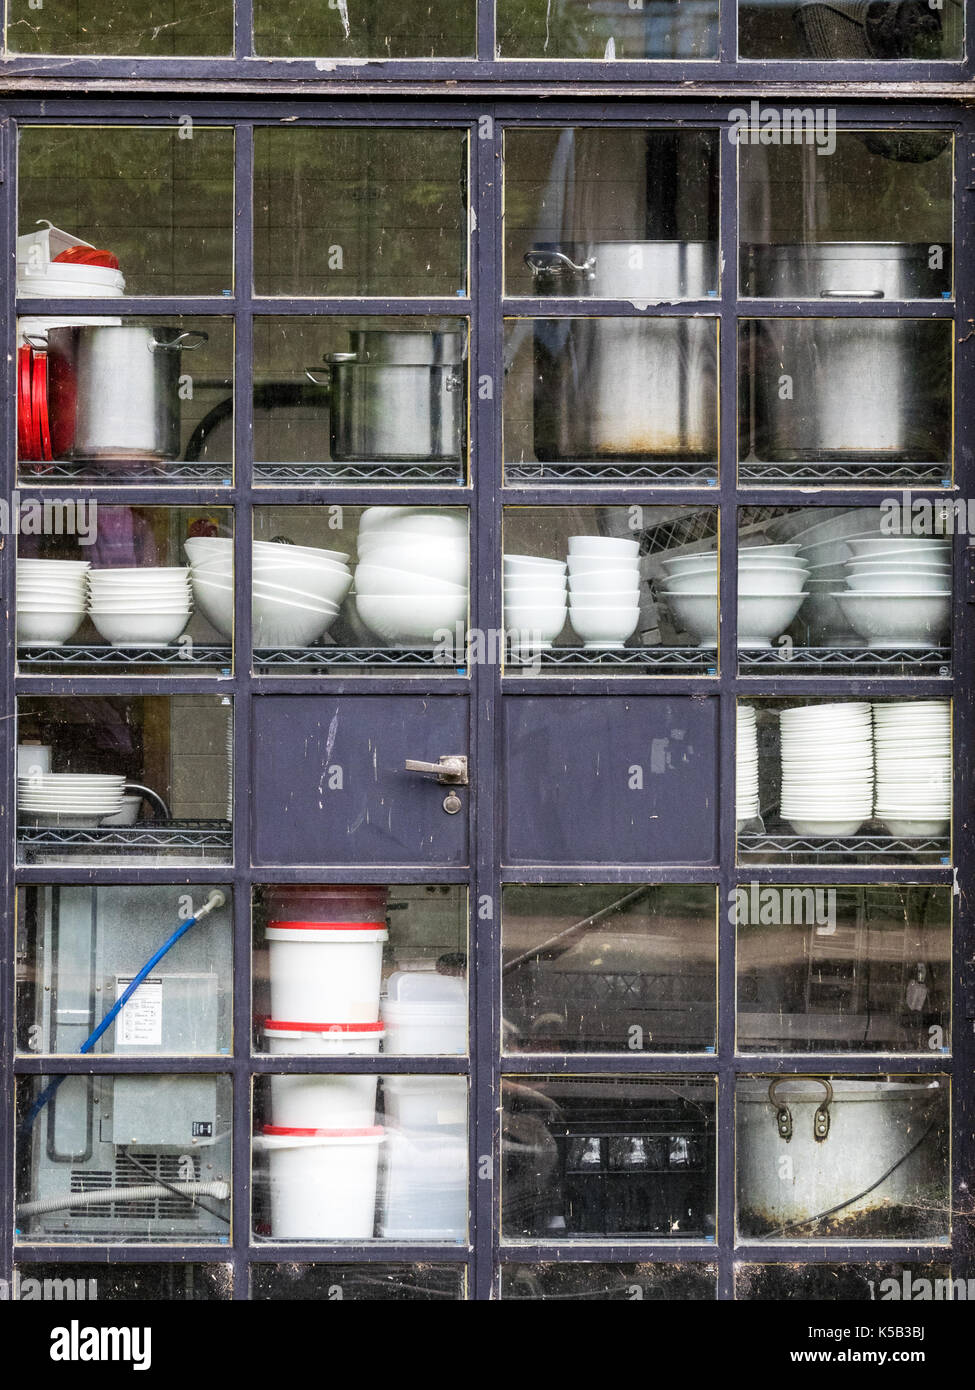 Crockery and storage jars in the window of a London restaurant near Regents Canal - Stock Image